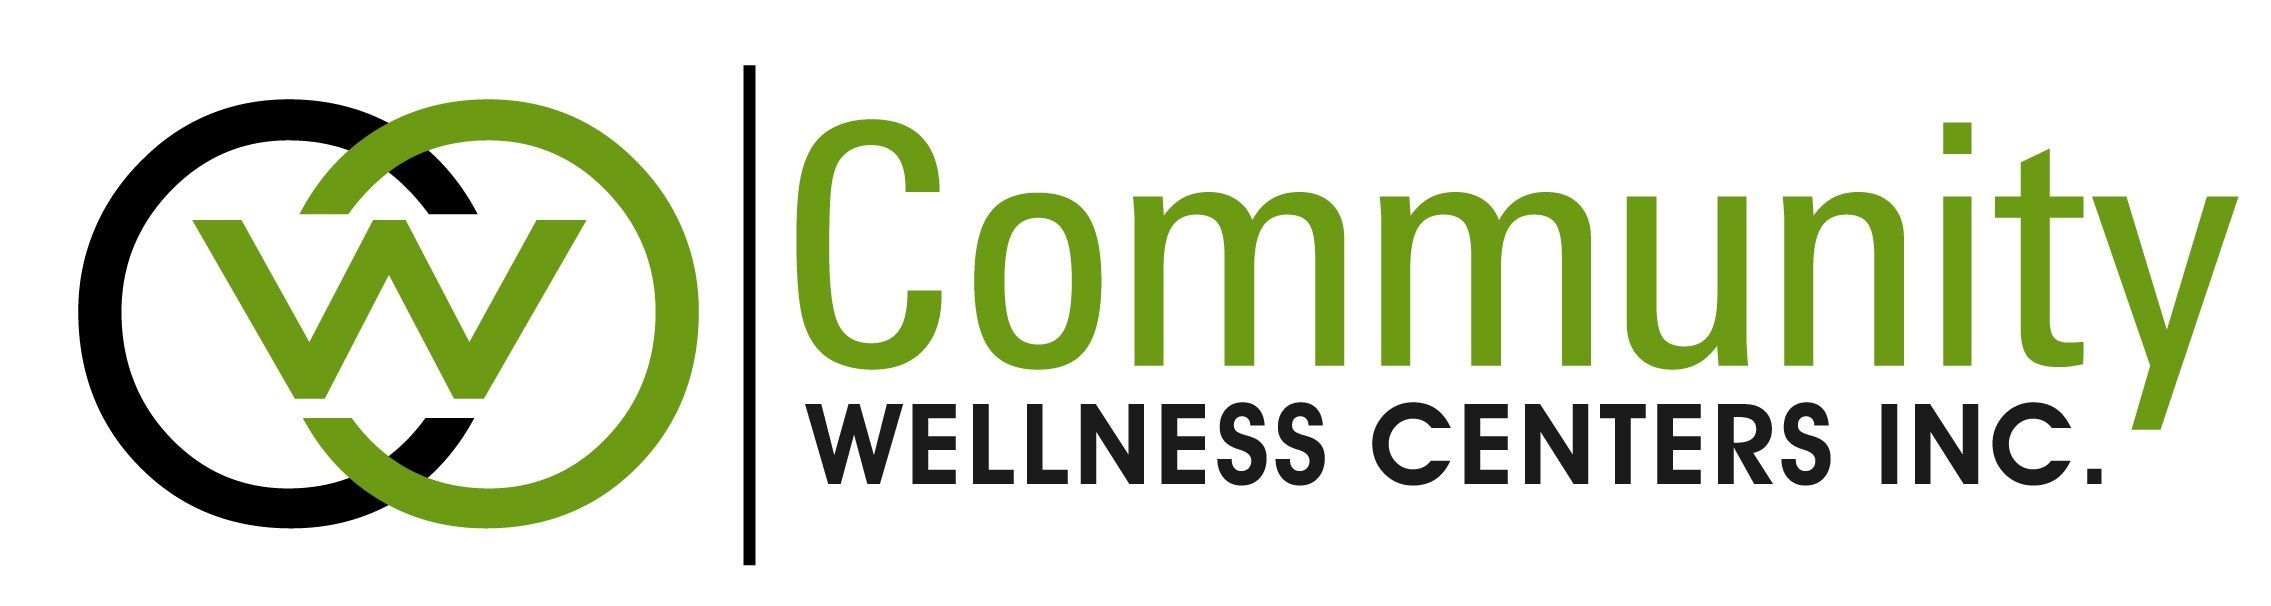 Community Wellness Center